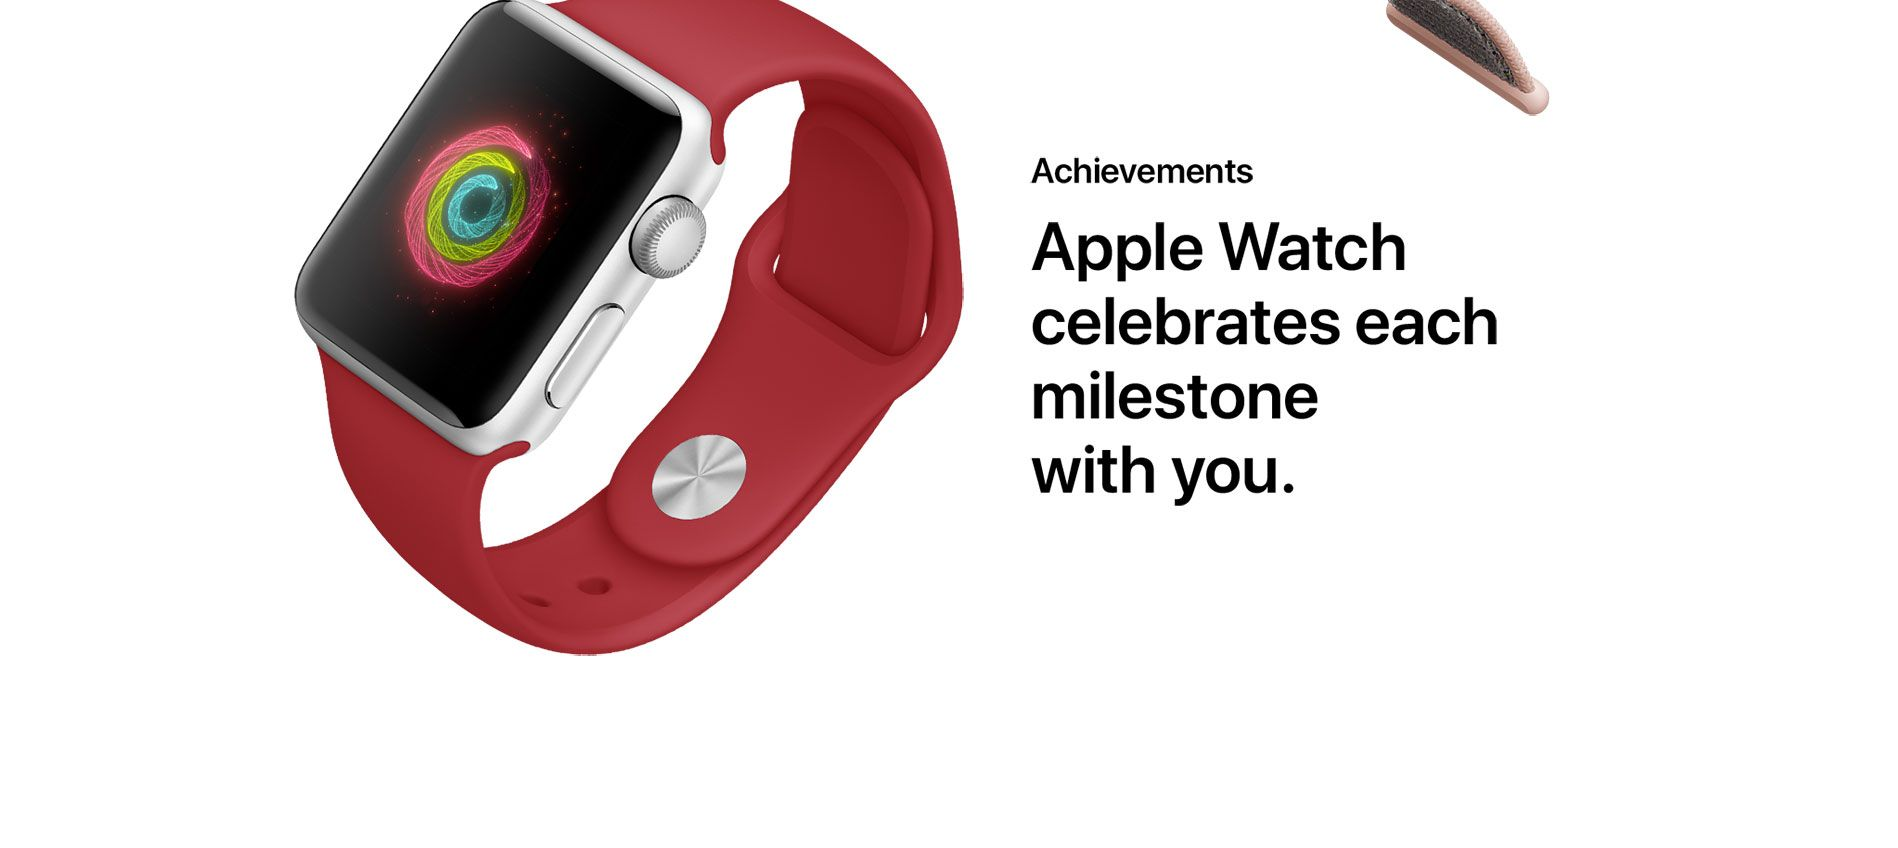 Achievements - Apple Watch celebrates each milestone with you